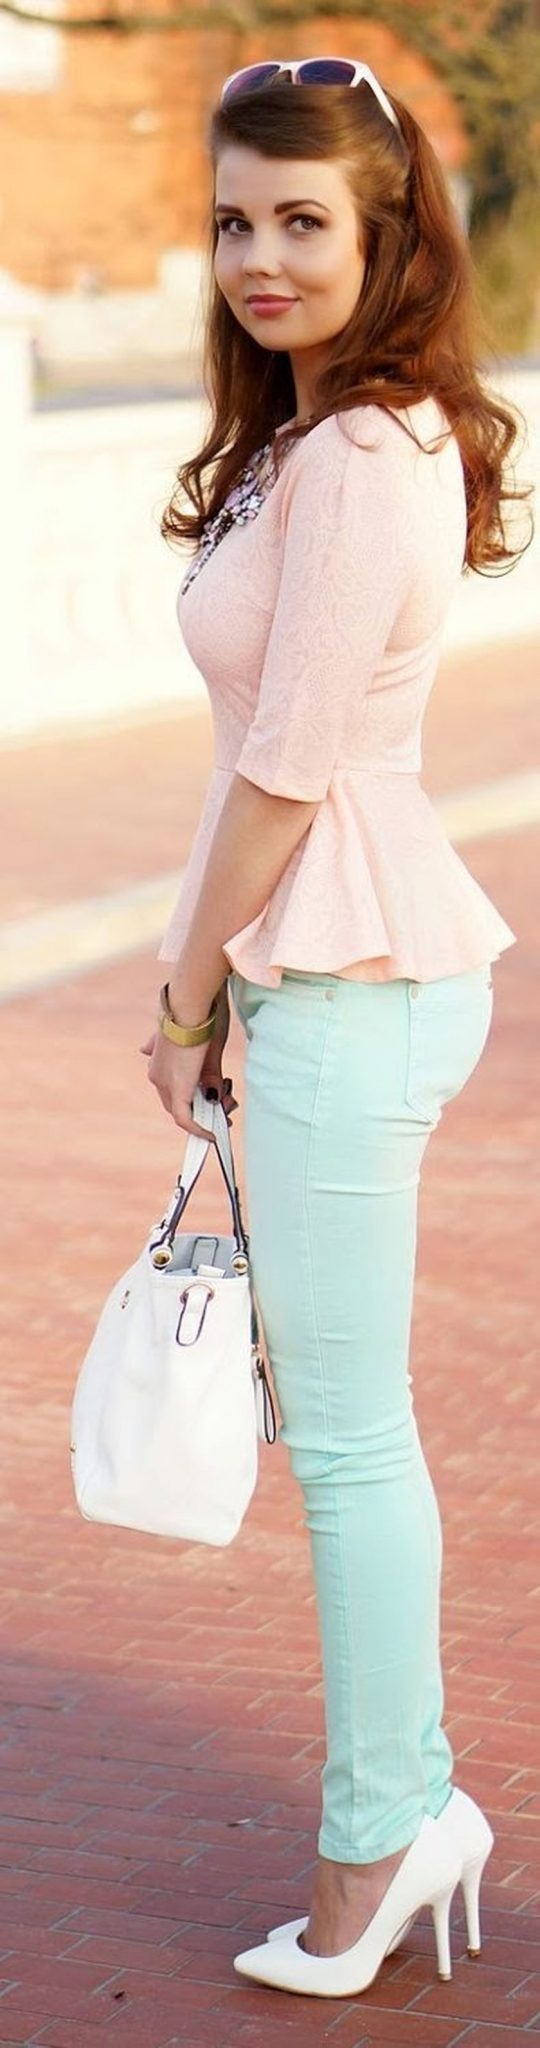 Teens date night outfits ideas need to try 23